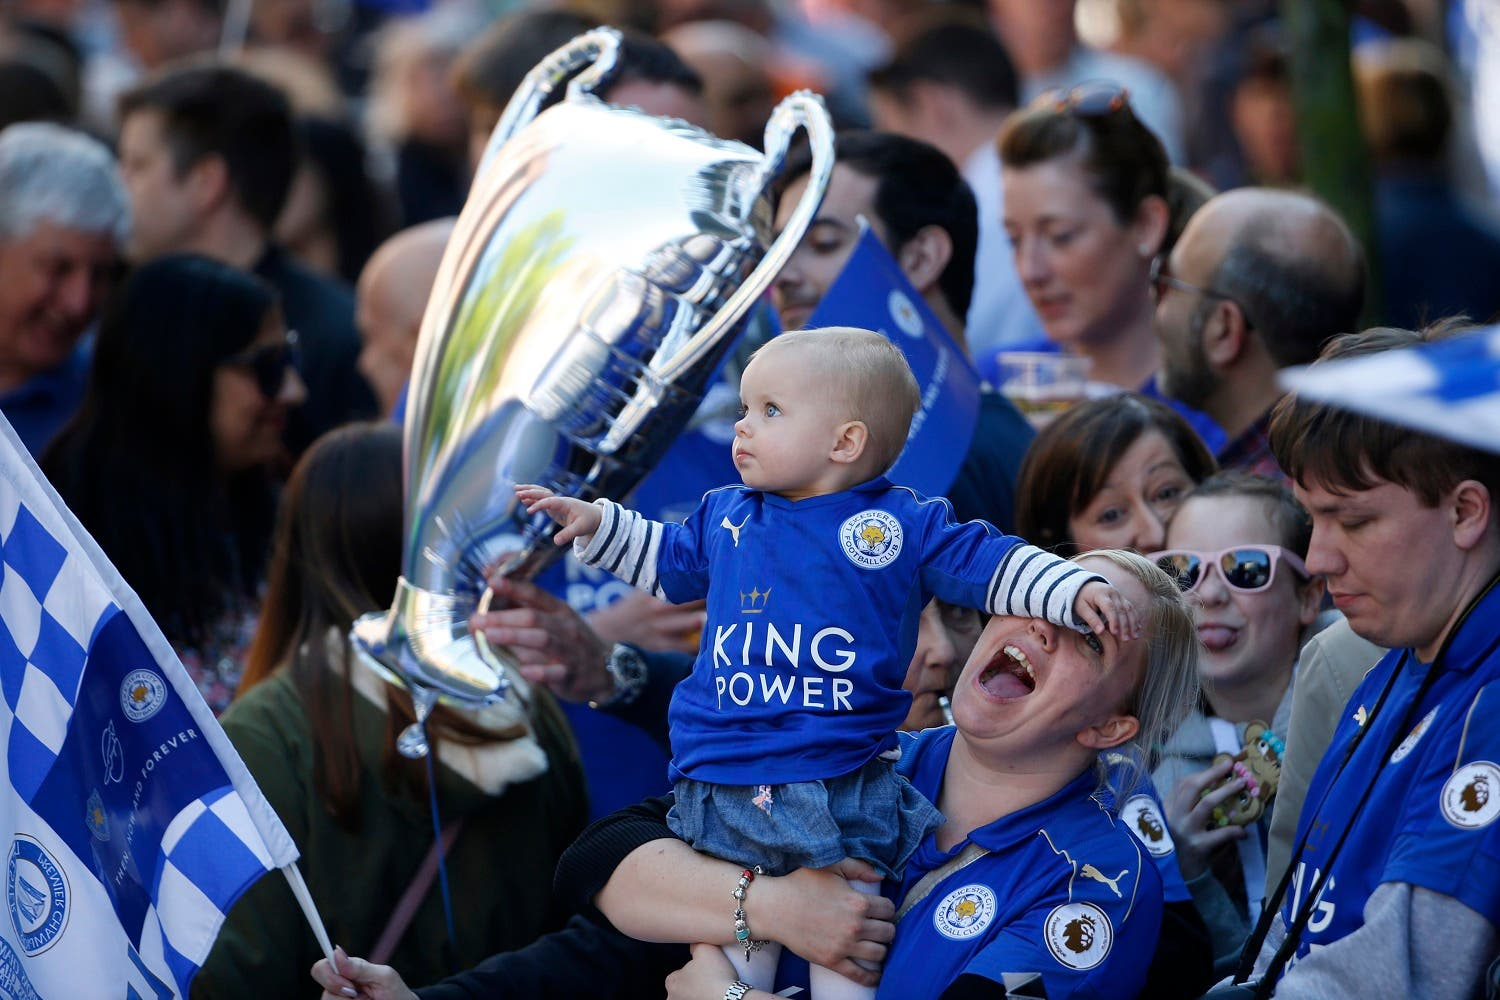 Leicester fans before the parade. (Reuters)